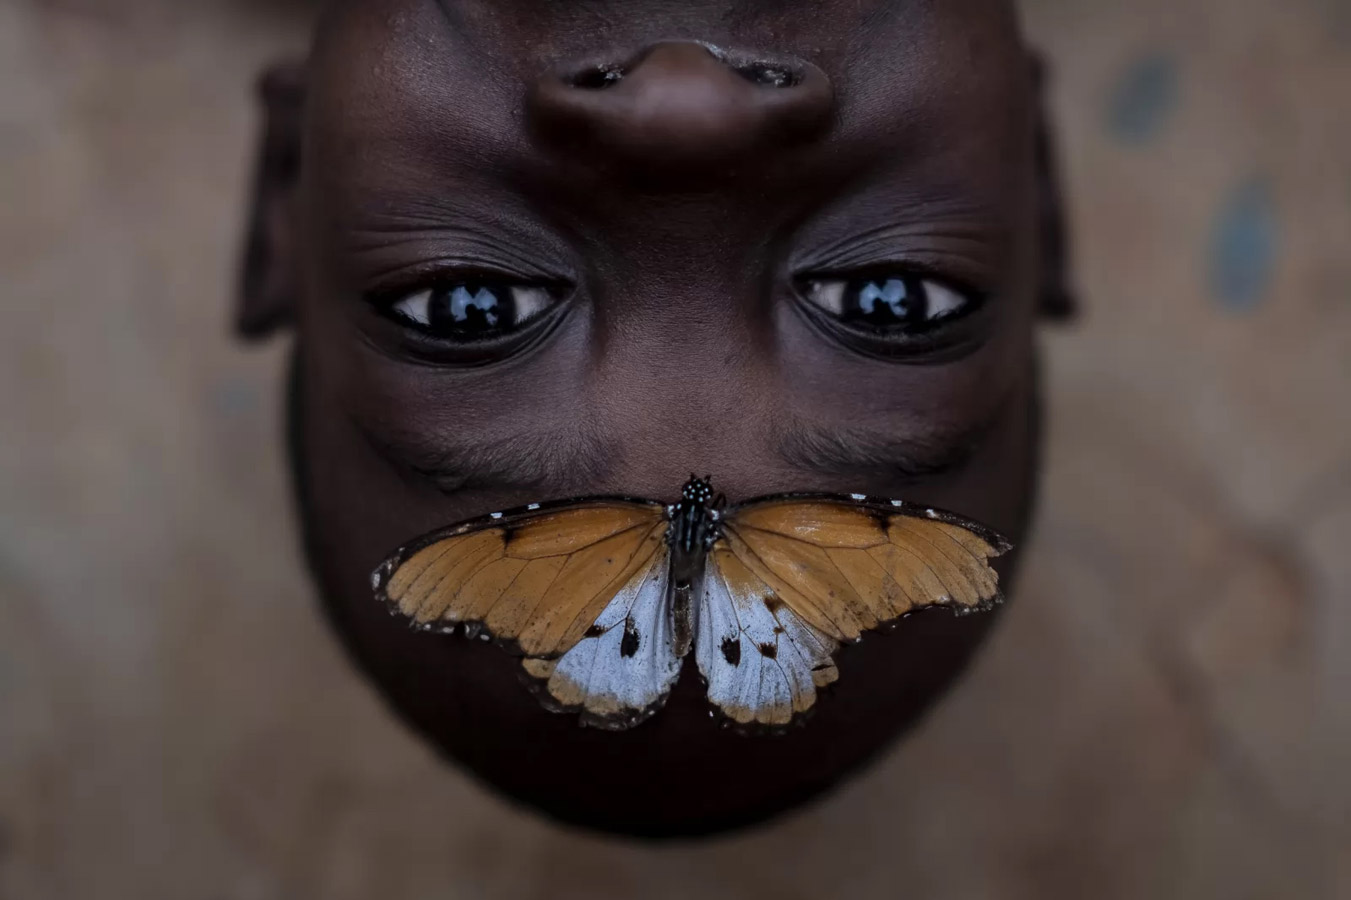 Benson and The Butterfly, © Emilio Aparicio Rodríguez, Global Grand Prize Winner, Metro Photo Challenge